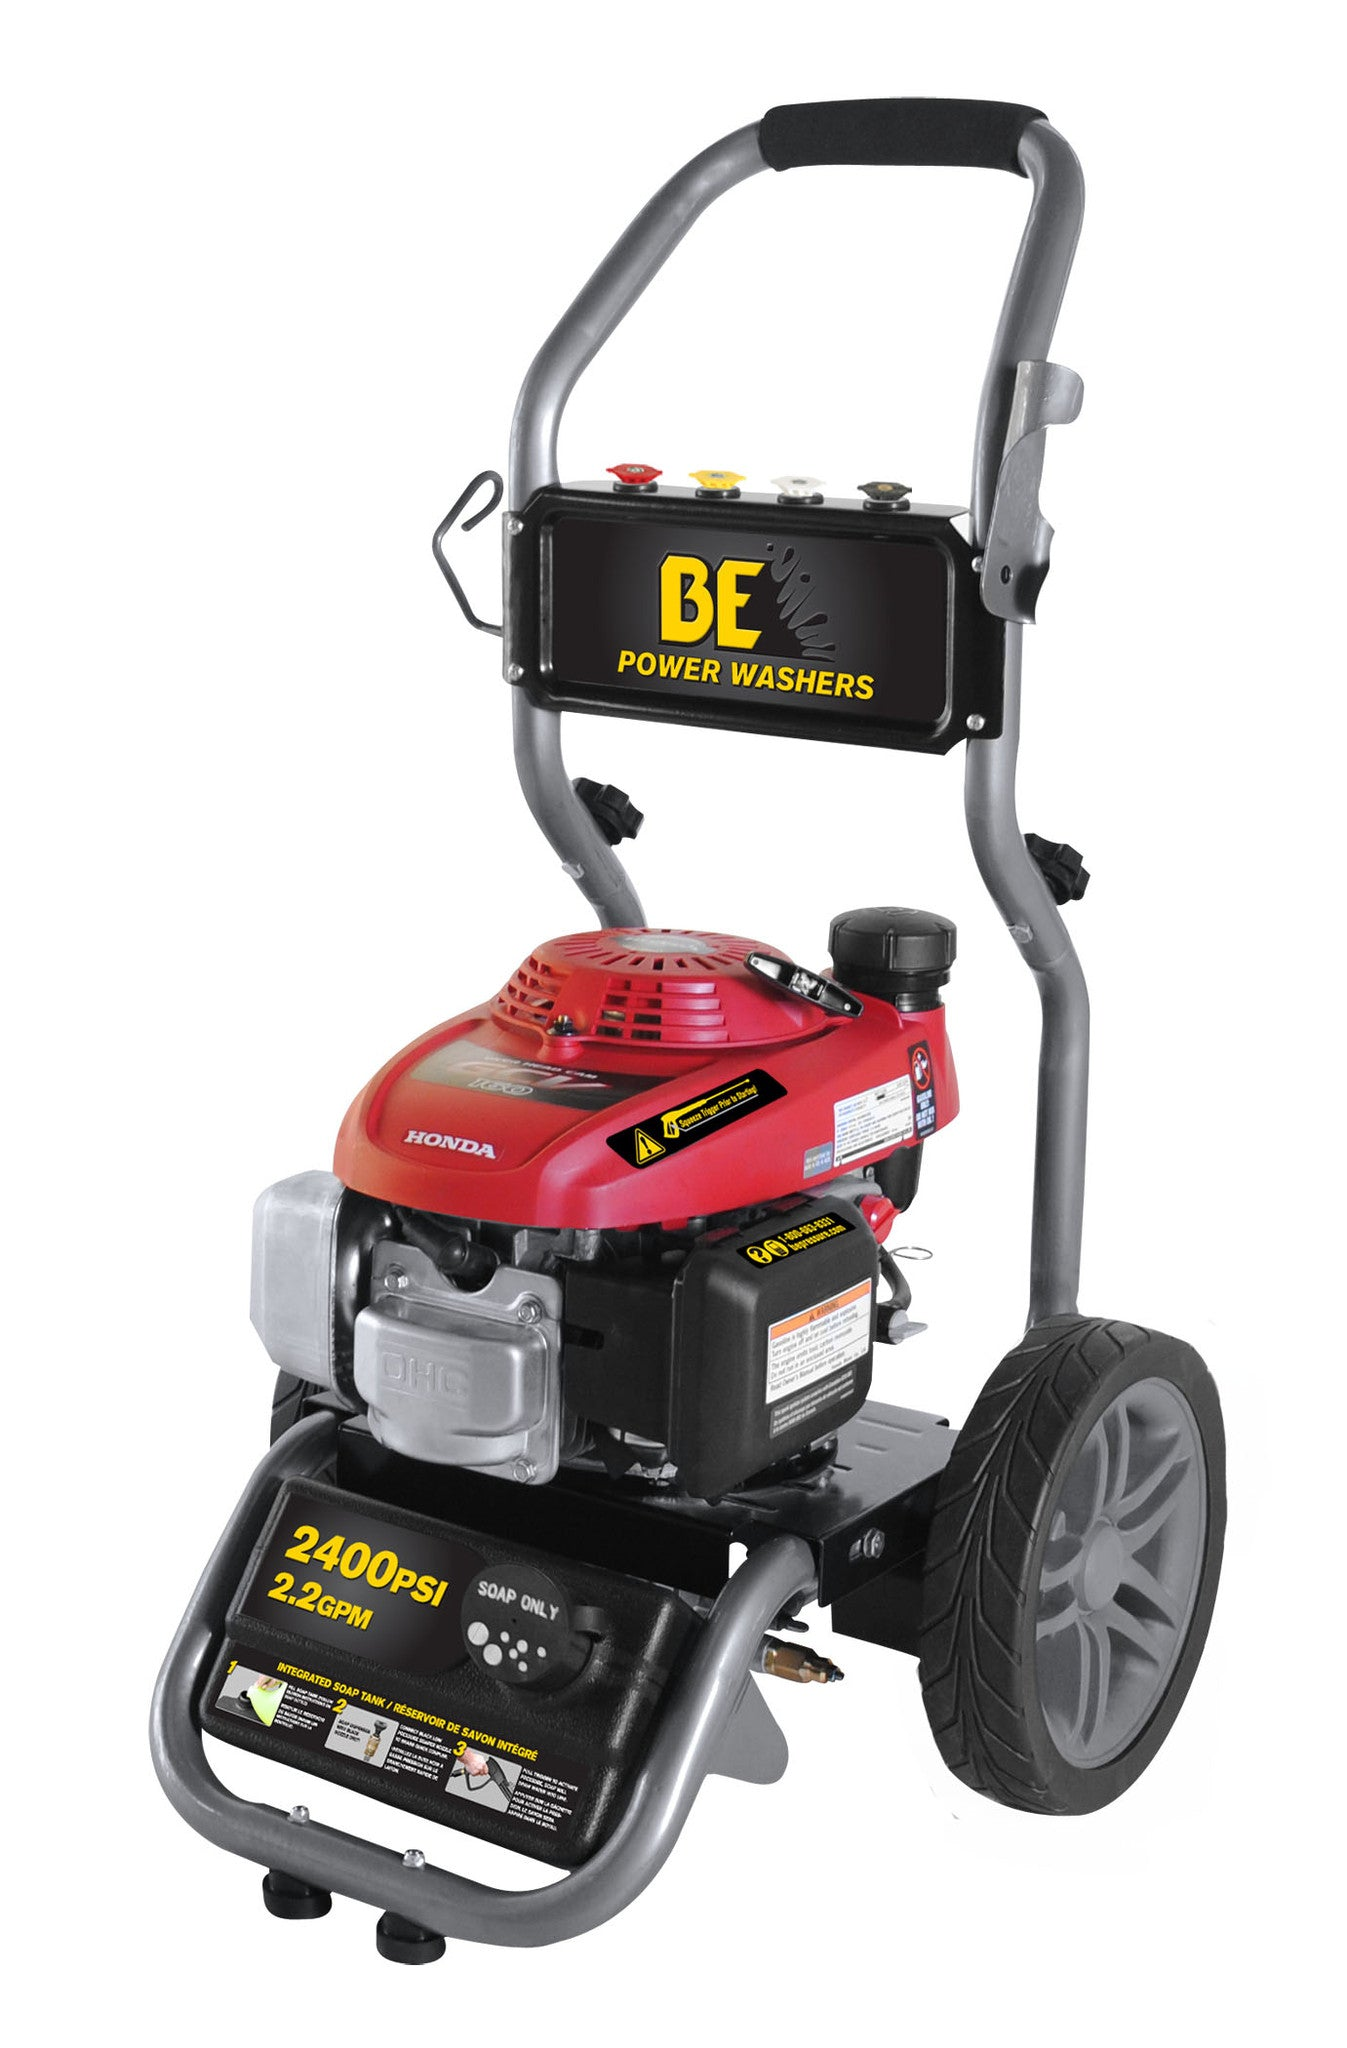 2400 psi Gas Pressure Washer by BE Pressure Washer w/ Honda Engine (BE2455HVAS)